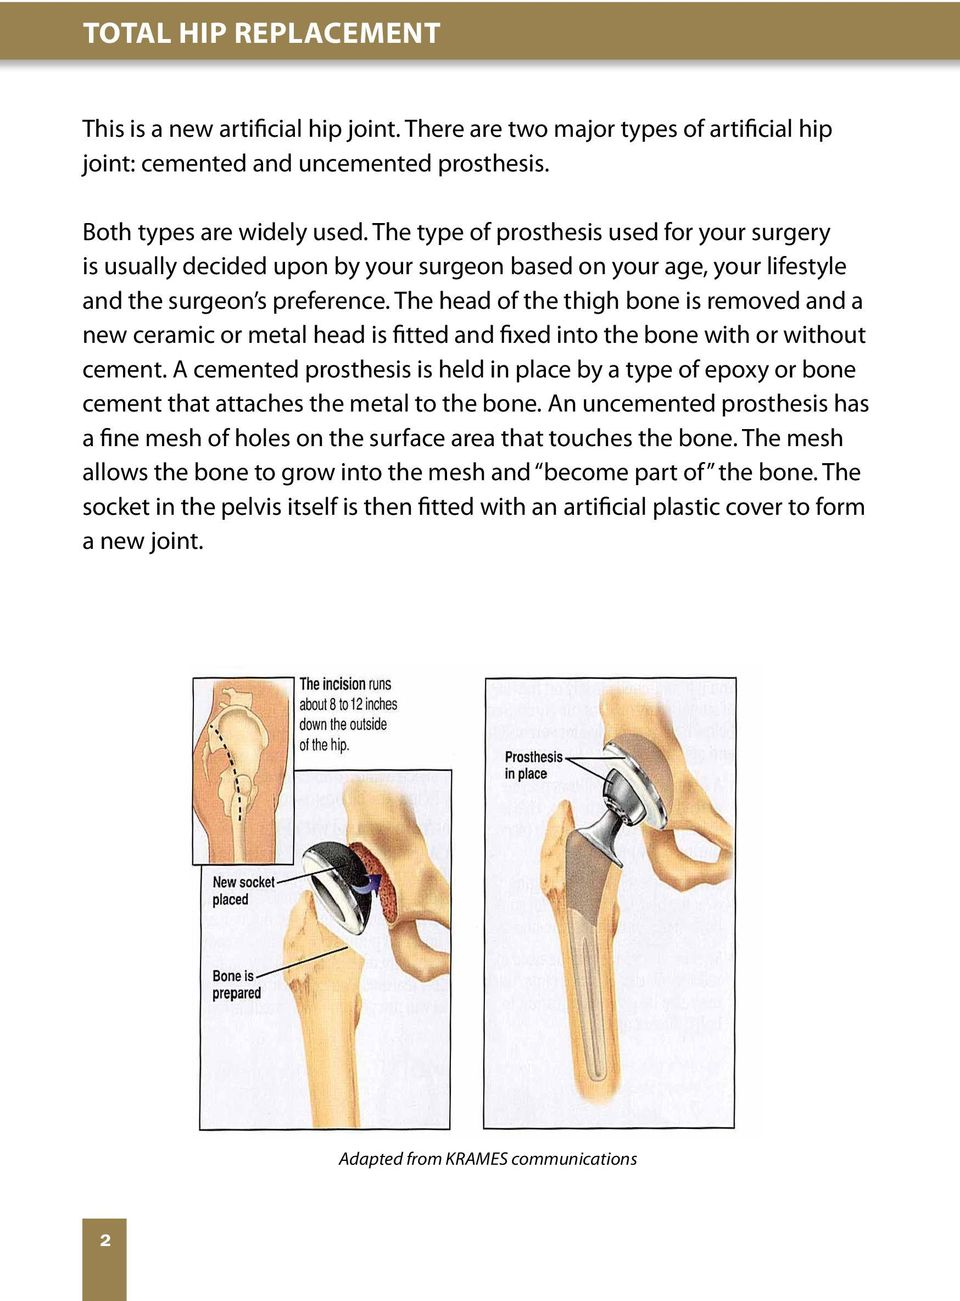 Post-operative guidelines for patients having total hip